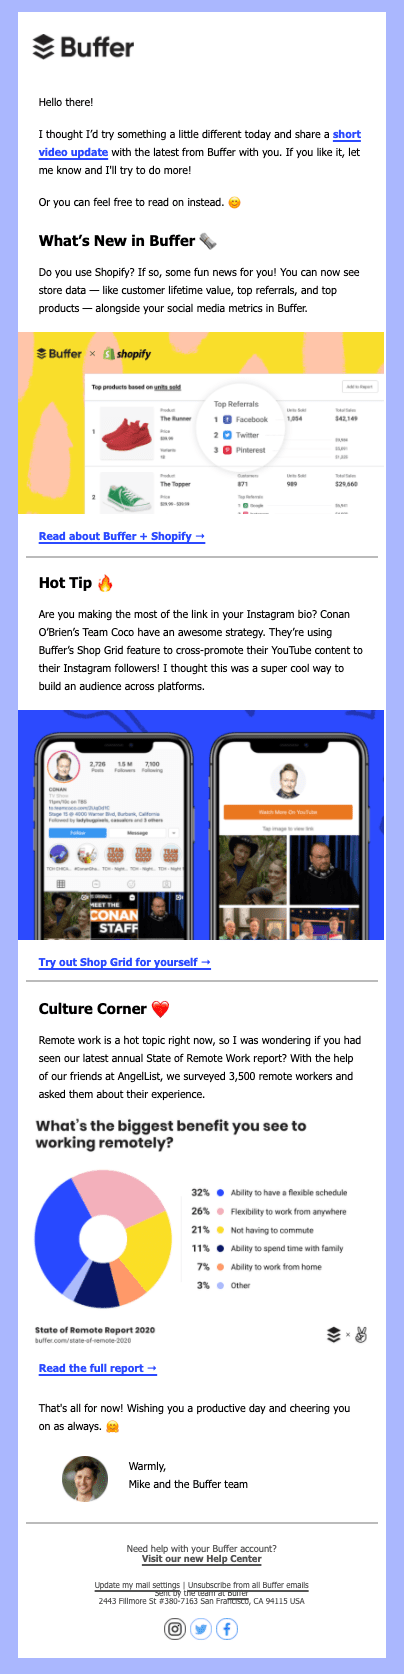 Buffer product email example